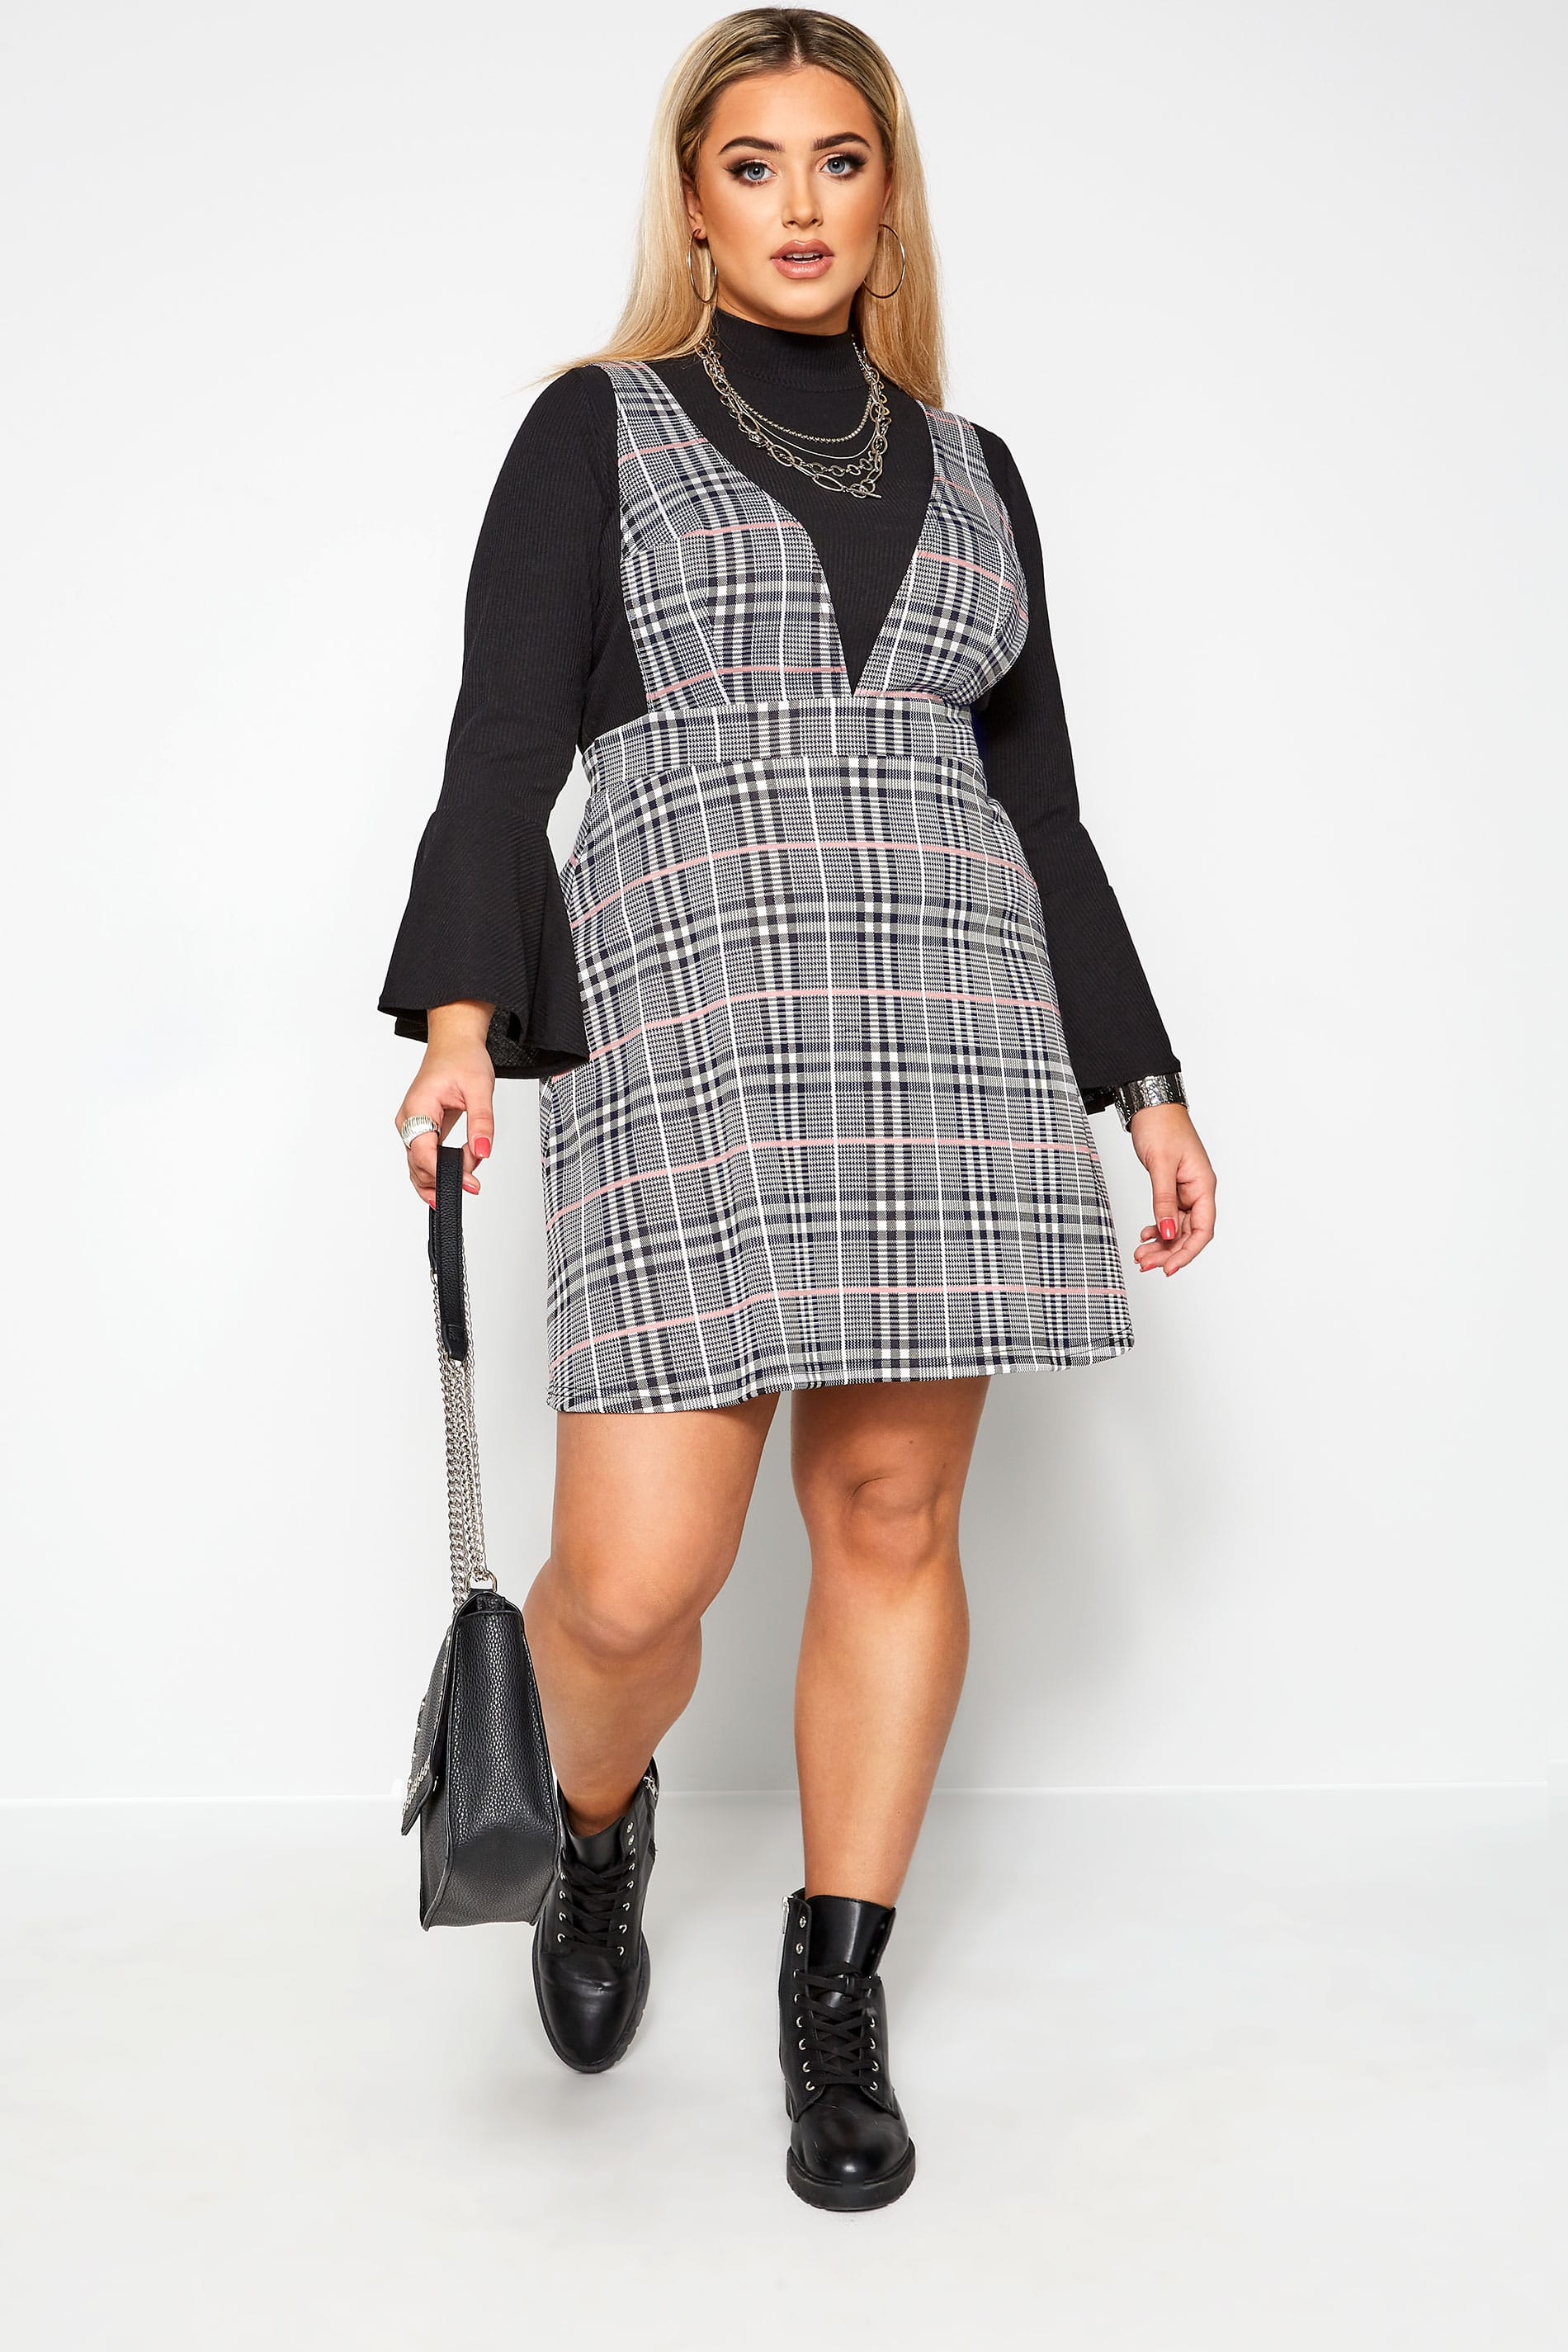 LIMITED COLLECTION Black & Pink Check Pinafore Dress